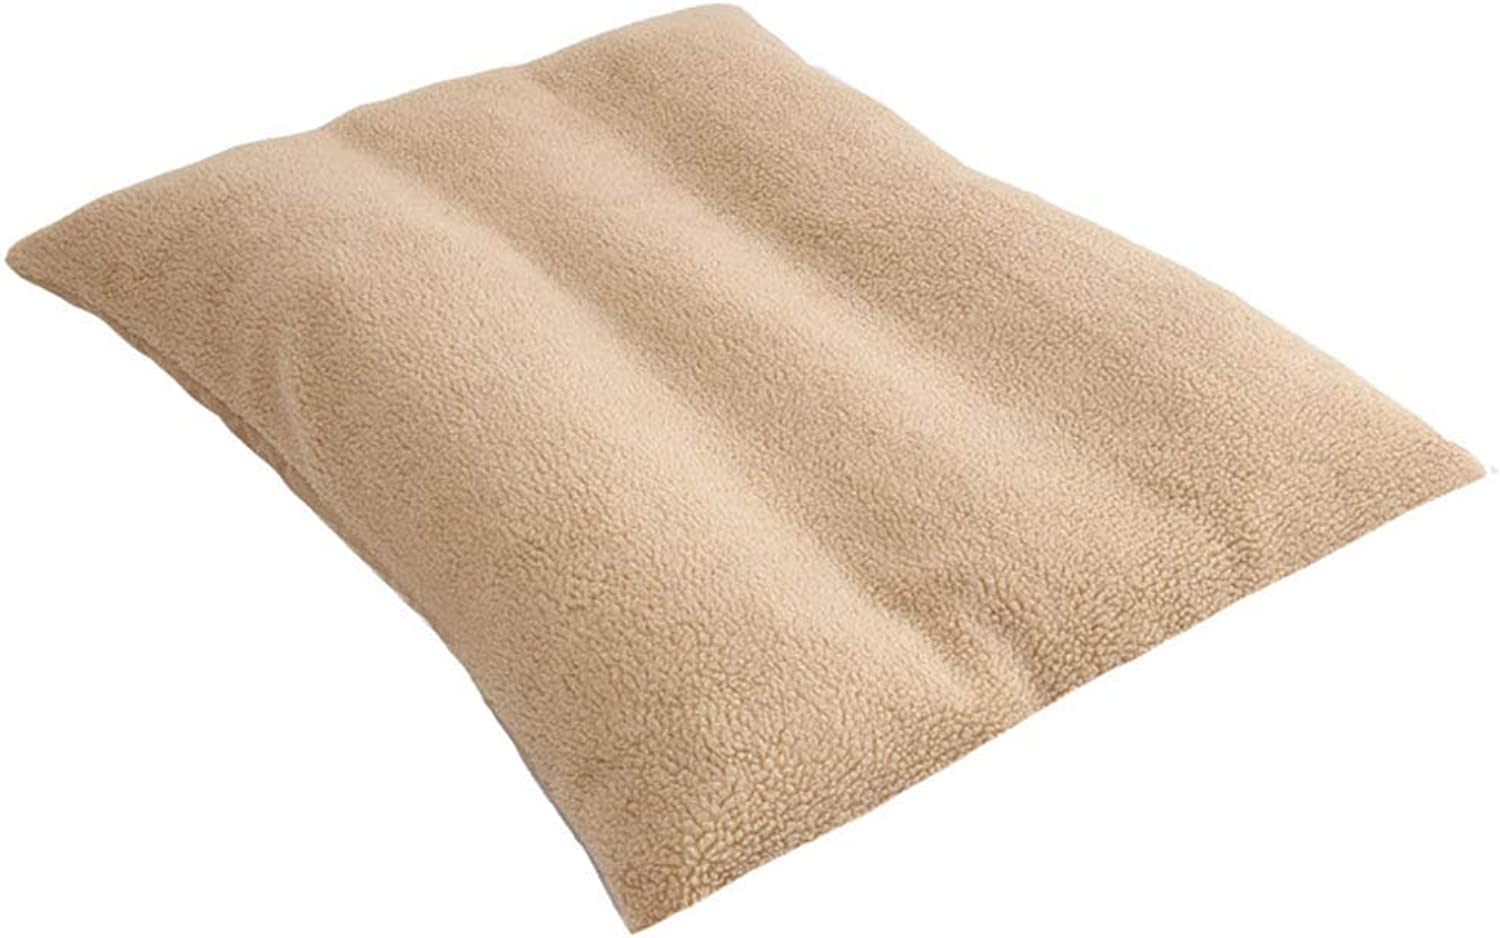 Pet Bed Cushion with Wool Fabric Cushion 2 in One Washable Pet Mat Sleeping Mattress Big Dog Crates Pad Car Seat Cover,Beige,XL